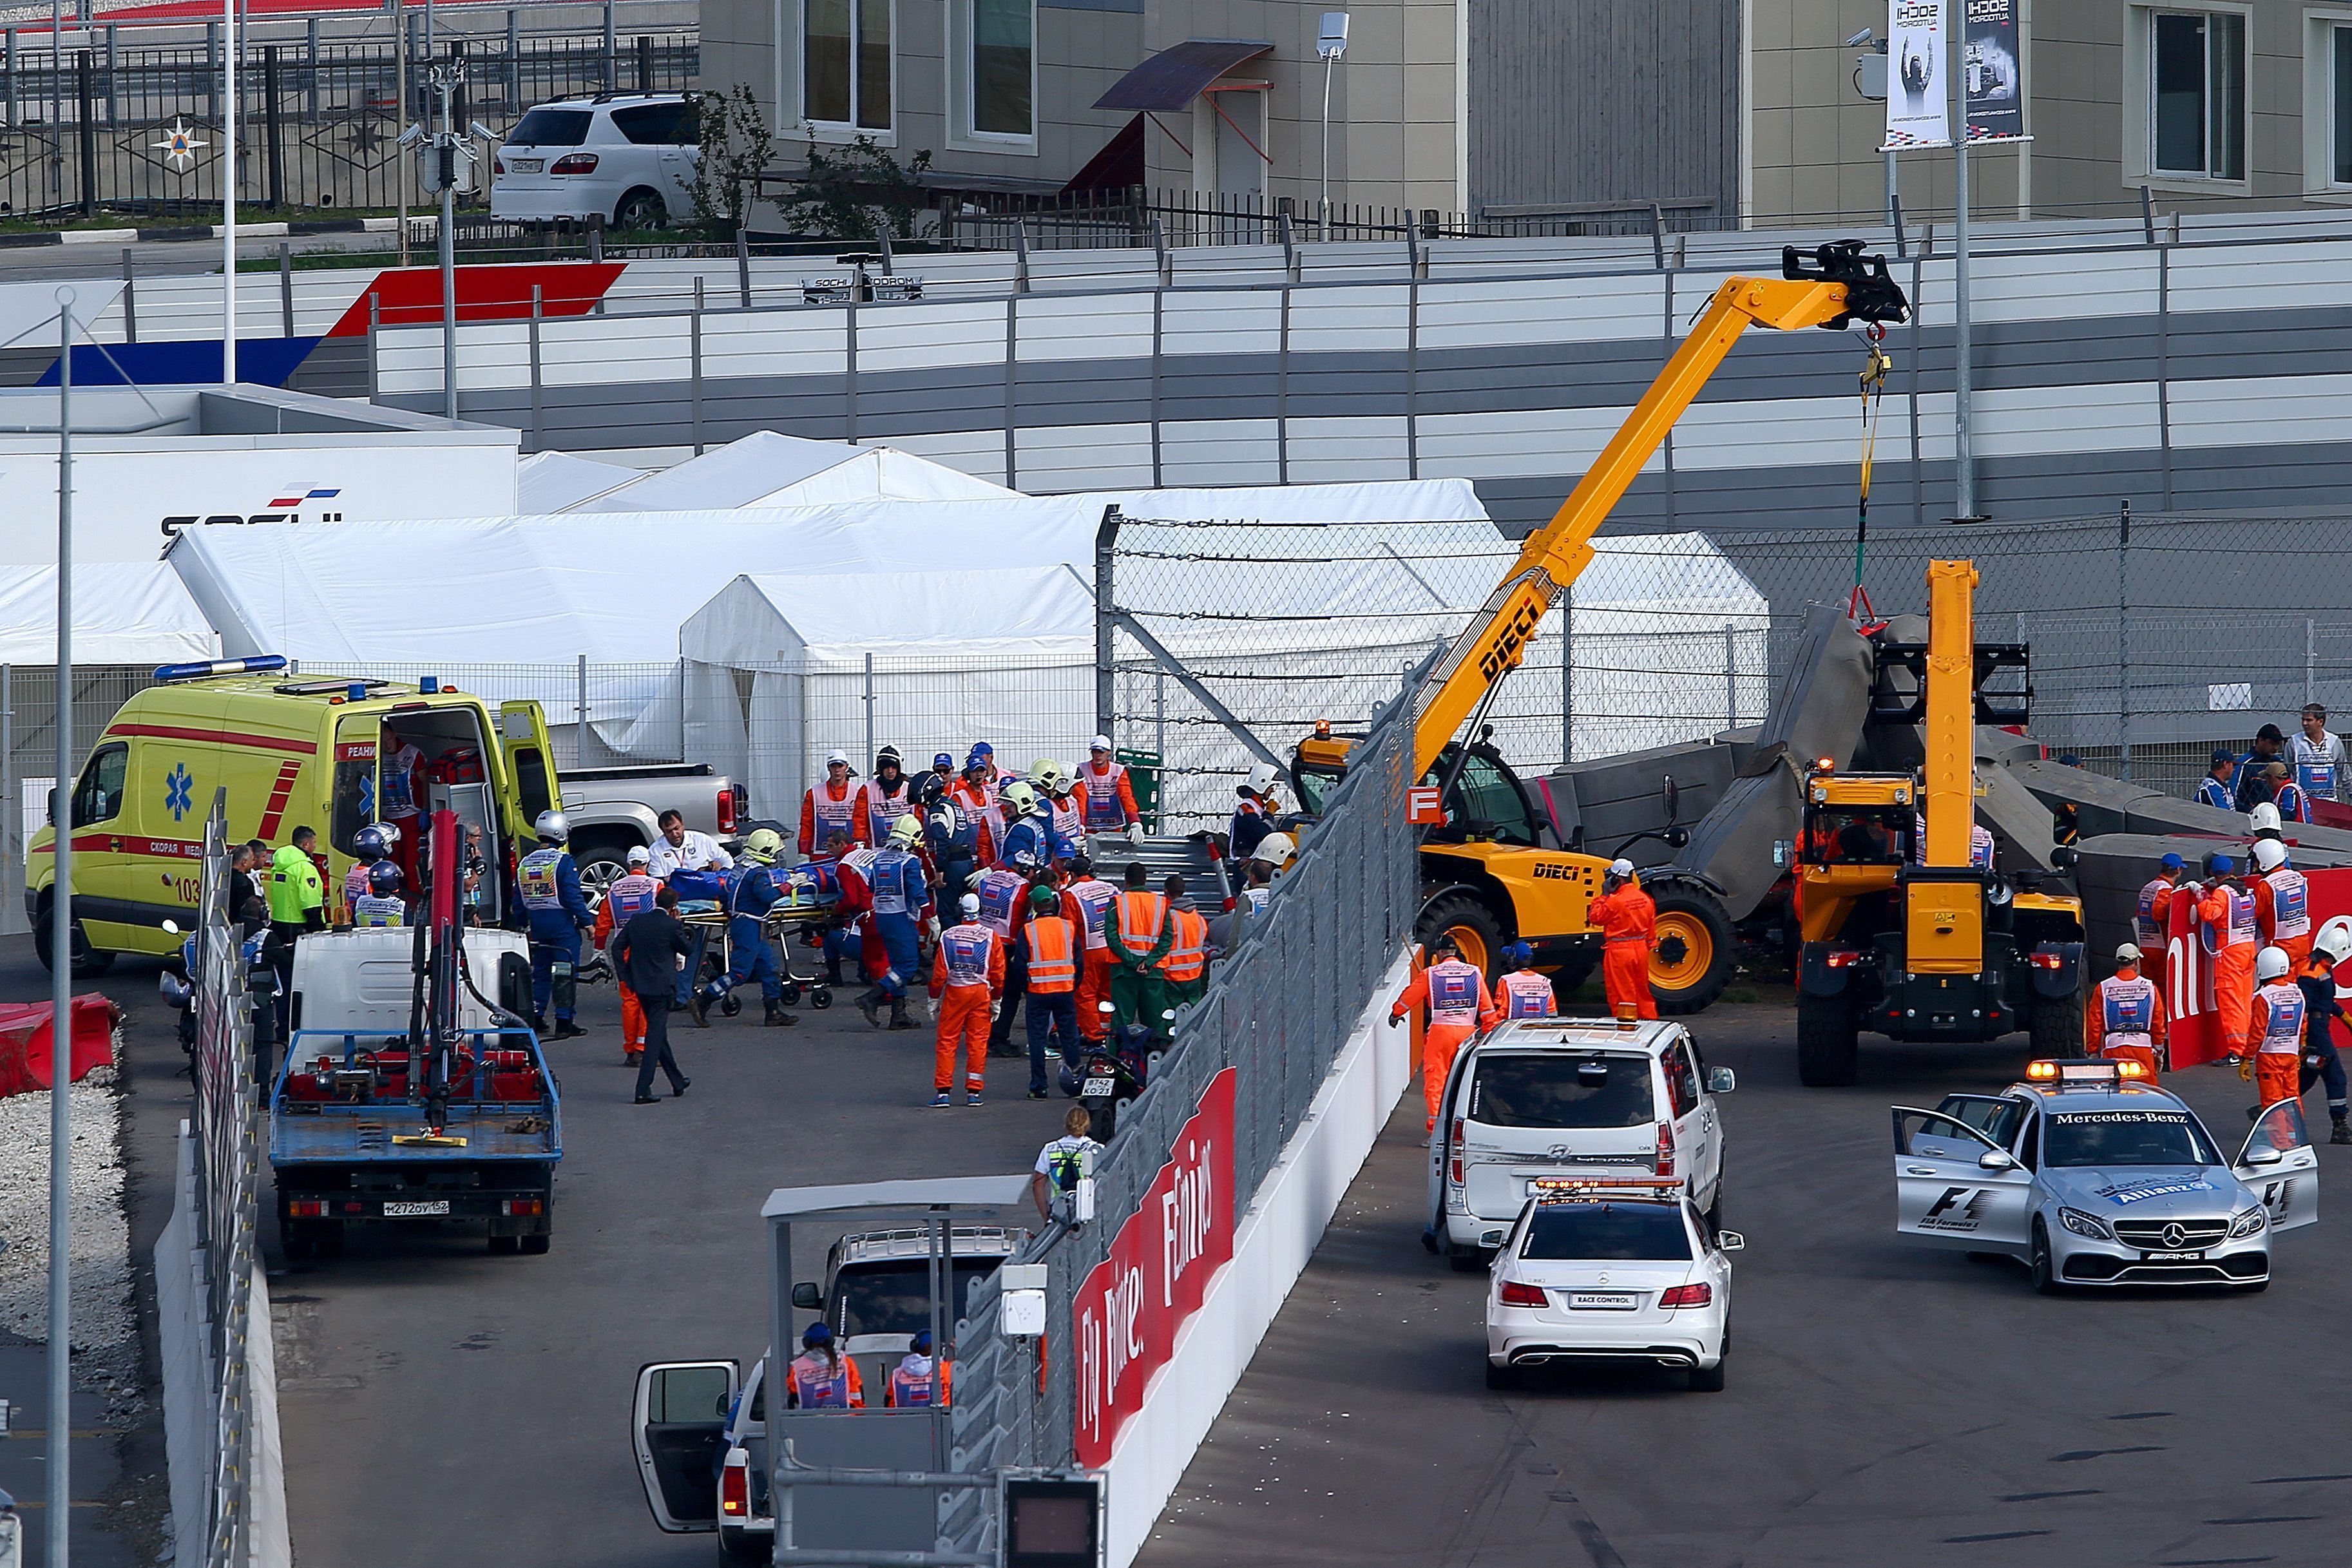 xxxx during final practice for the Formula One Grand Prix of Russia at Sochi Autodrom on October 10, 2015 in Sochi, Russia.